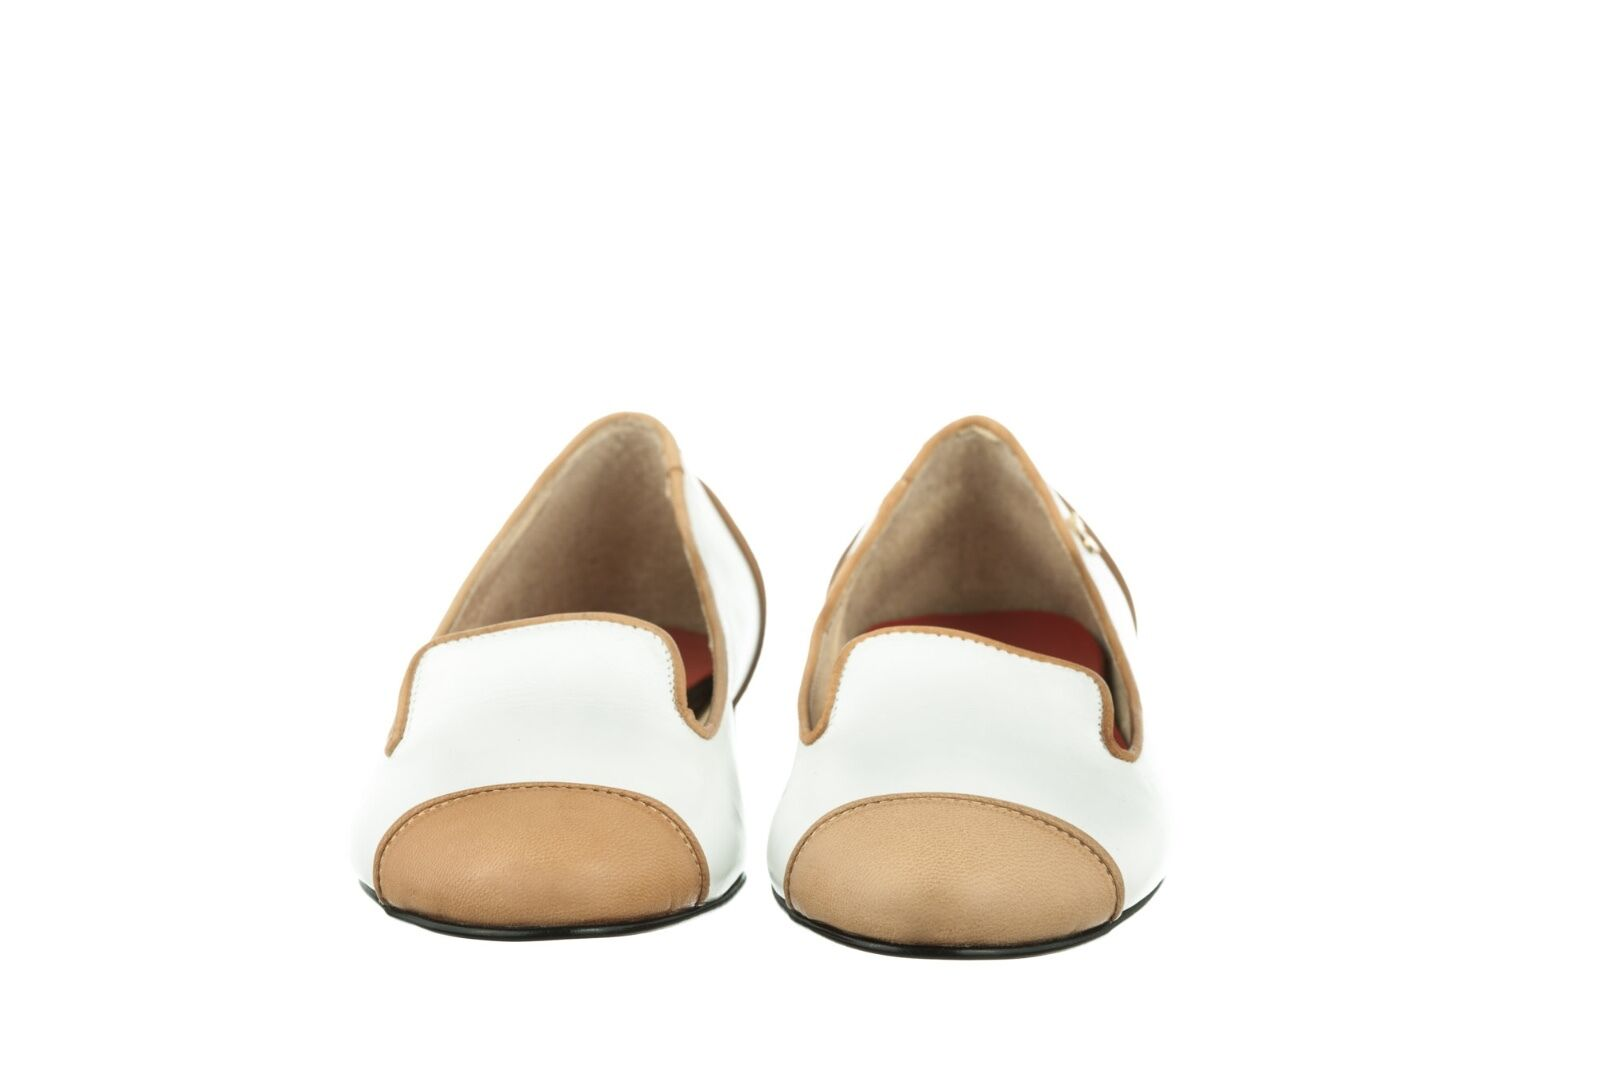 MORI MADE FLATS IN ITALY SLIP ON FLATS MADE SCHUHE SHOES BALLERINA LEATHER WHITE BIANCO 40 7ecd53